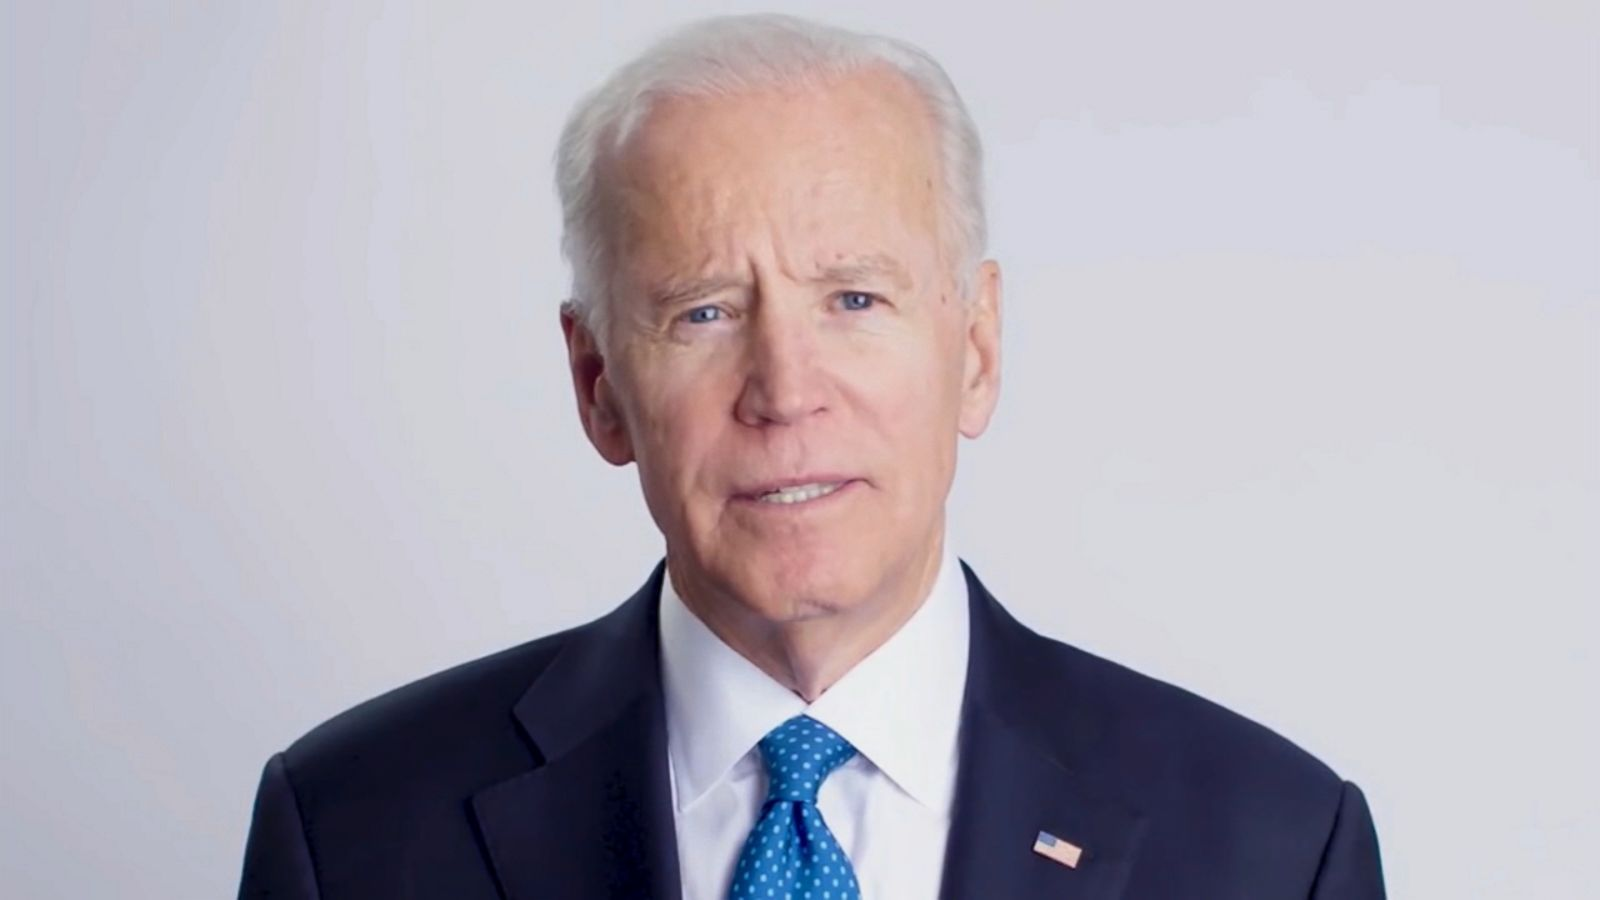 middle class joe biden hits the trail for dems but will it win